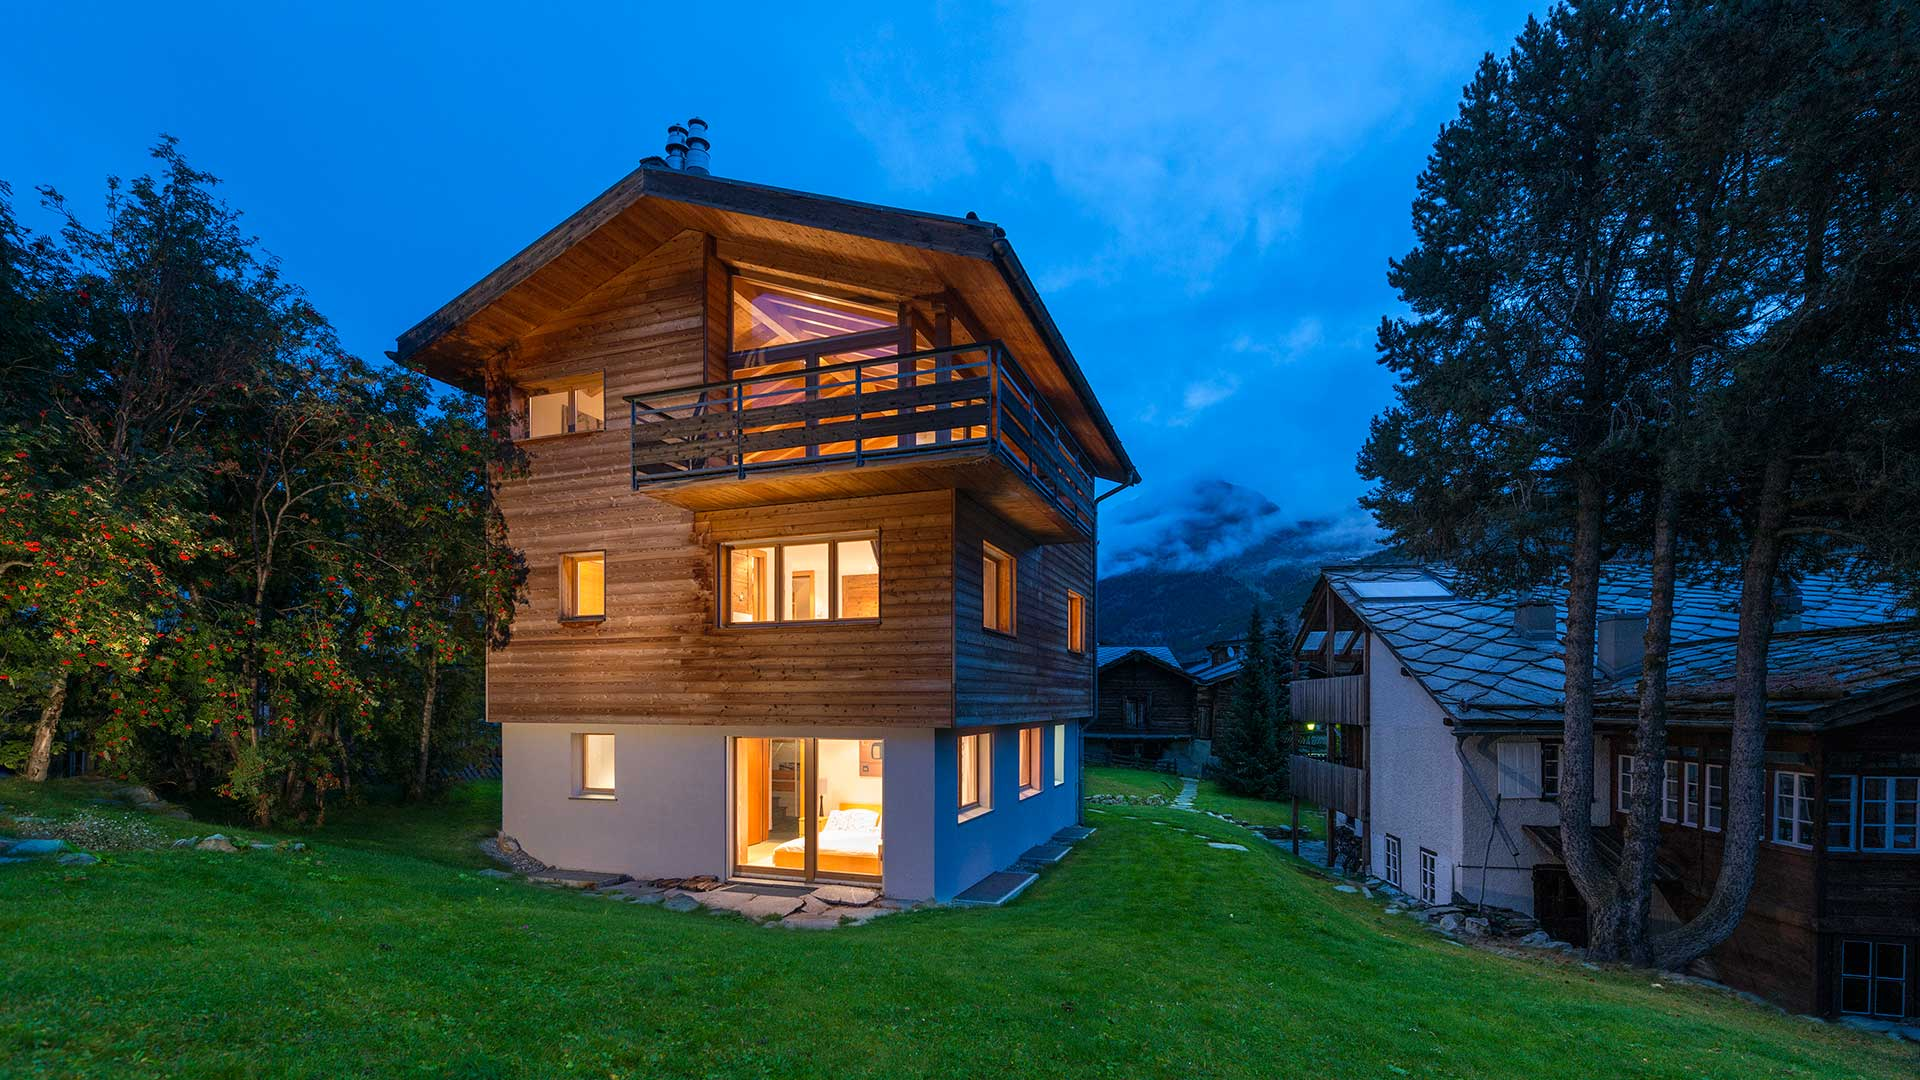 Chalet Uhu Chalet, Switzerland